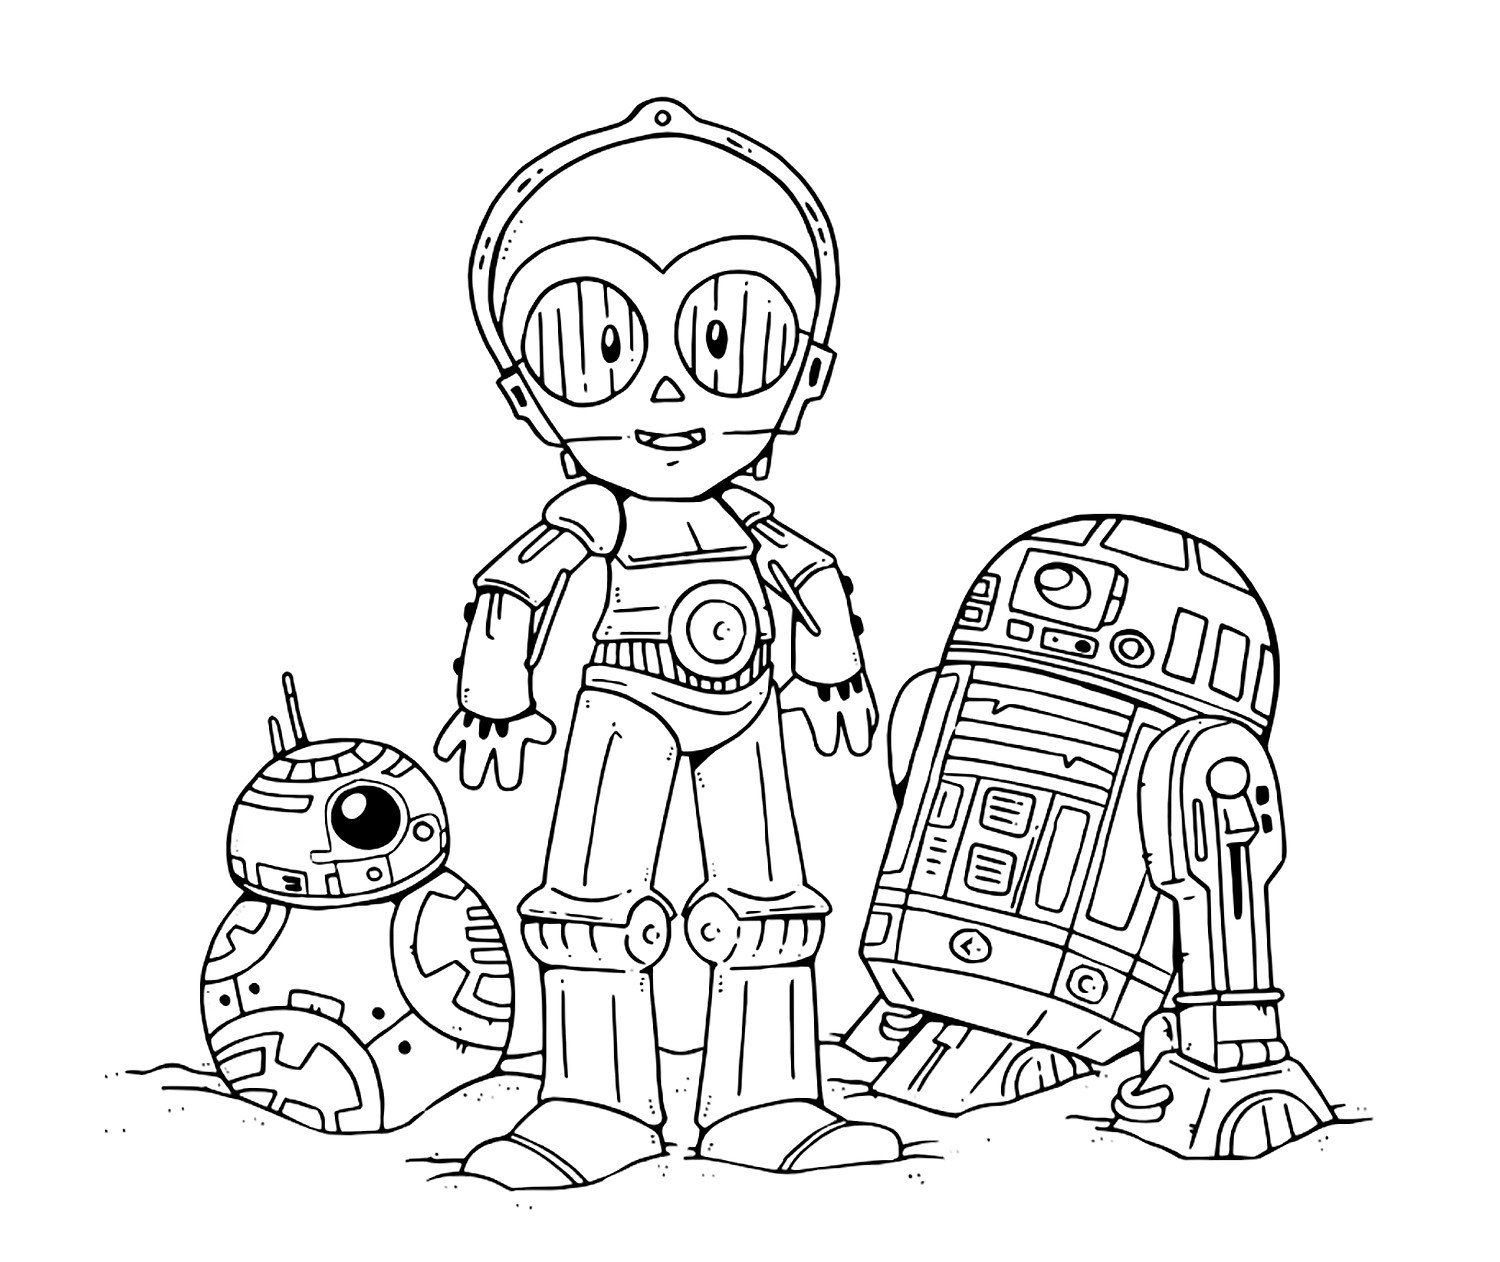 Star Wars Coloring Pages Luxury Coloring Pages Fabulous Star Wars Coloring Sheets Star Star Wars Coloring Book Cute Coloring Pages Star Wars Colors